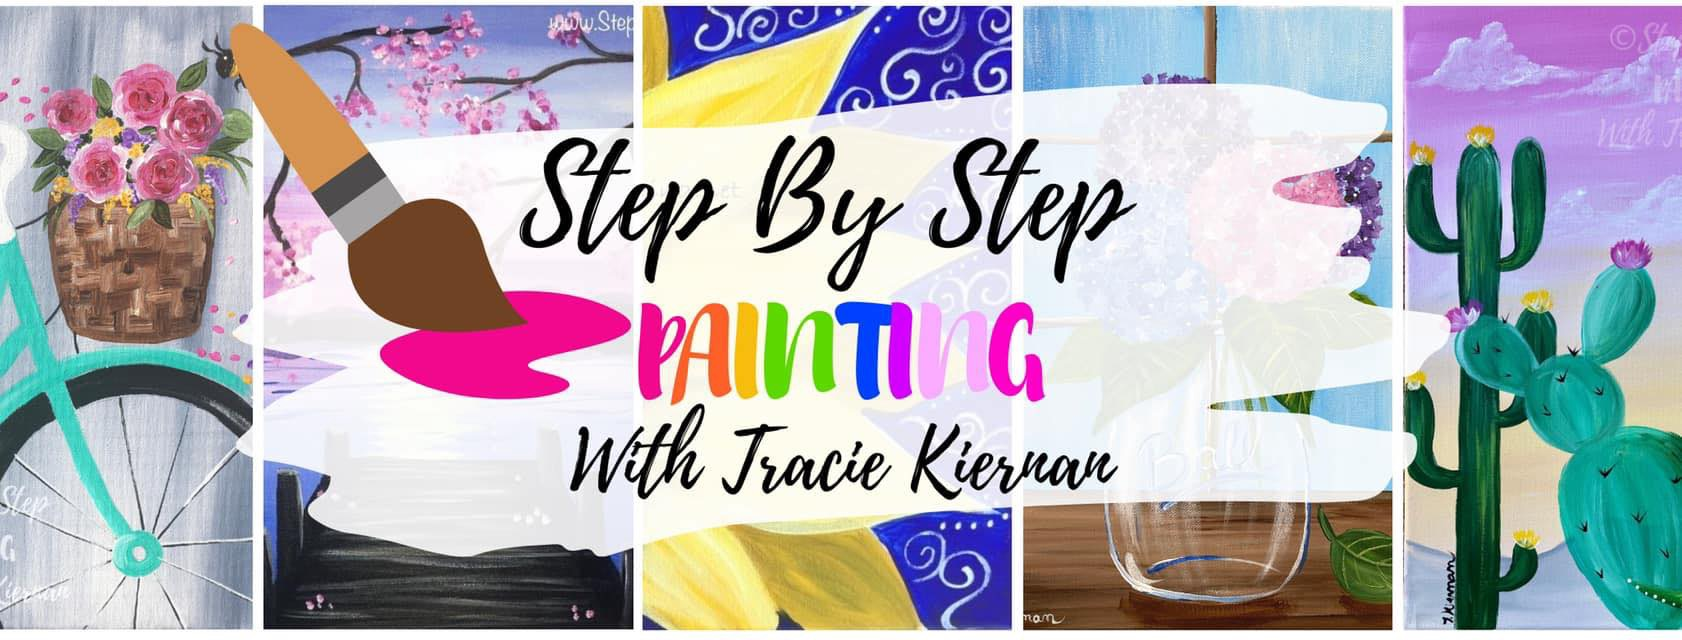 Step By Step Painting With Tracie Kiernan